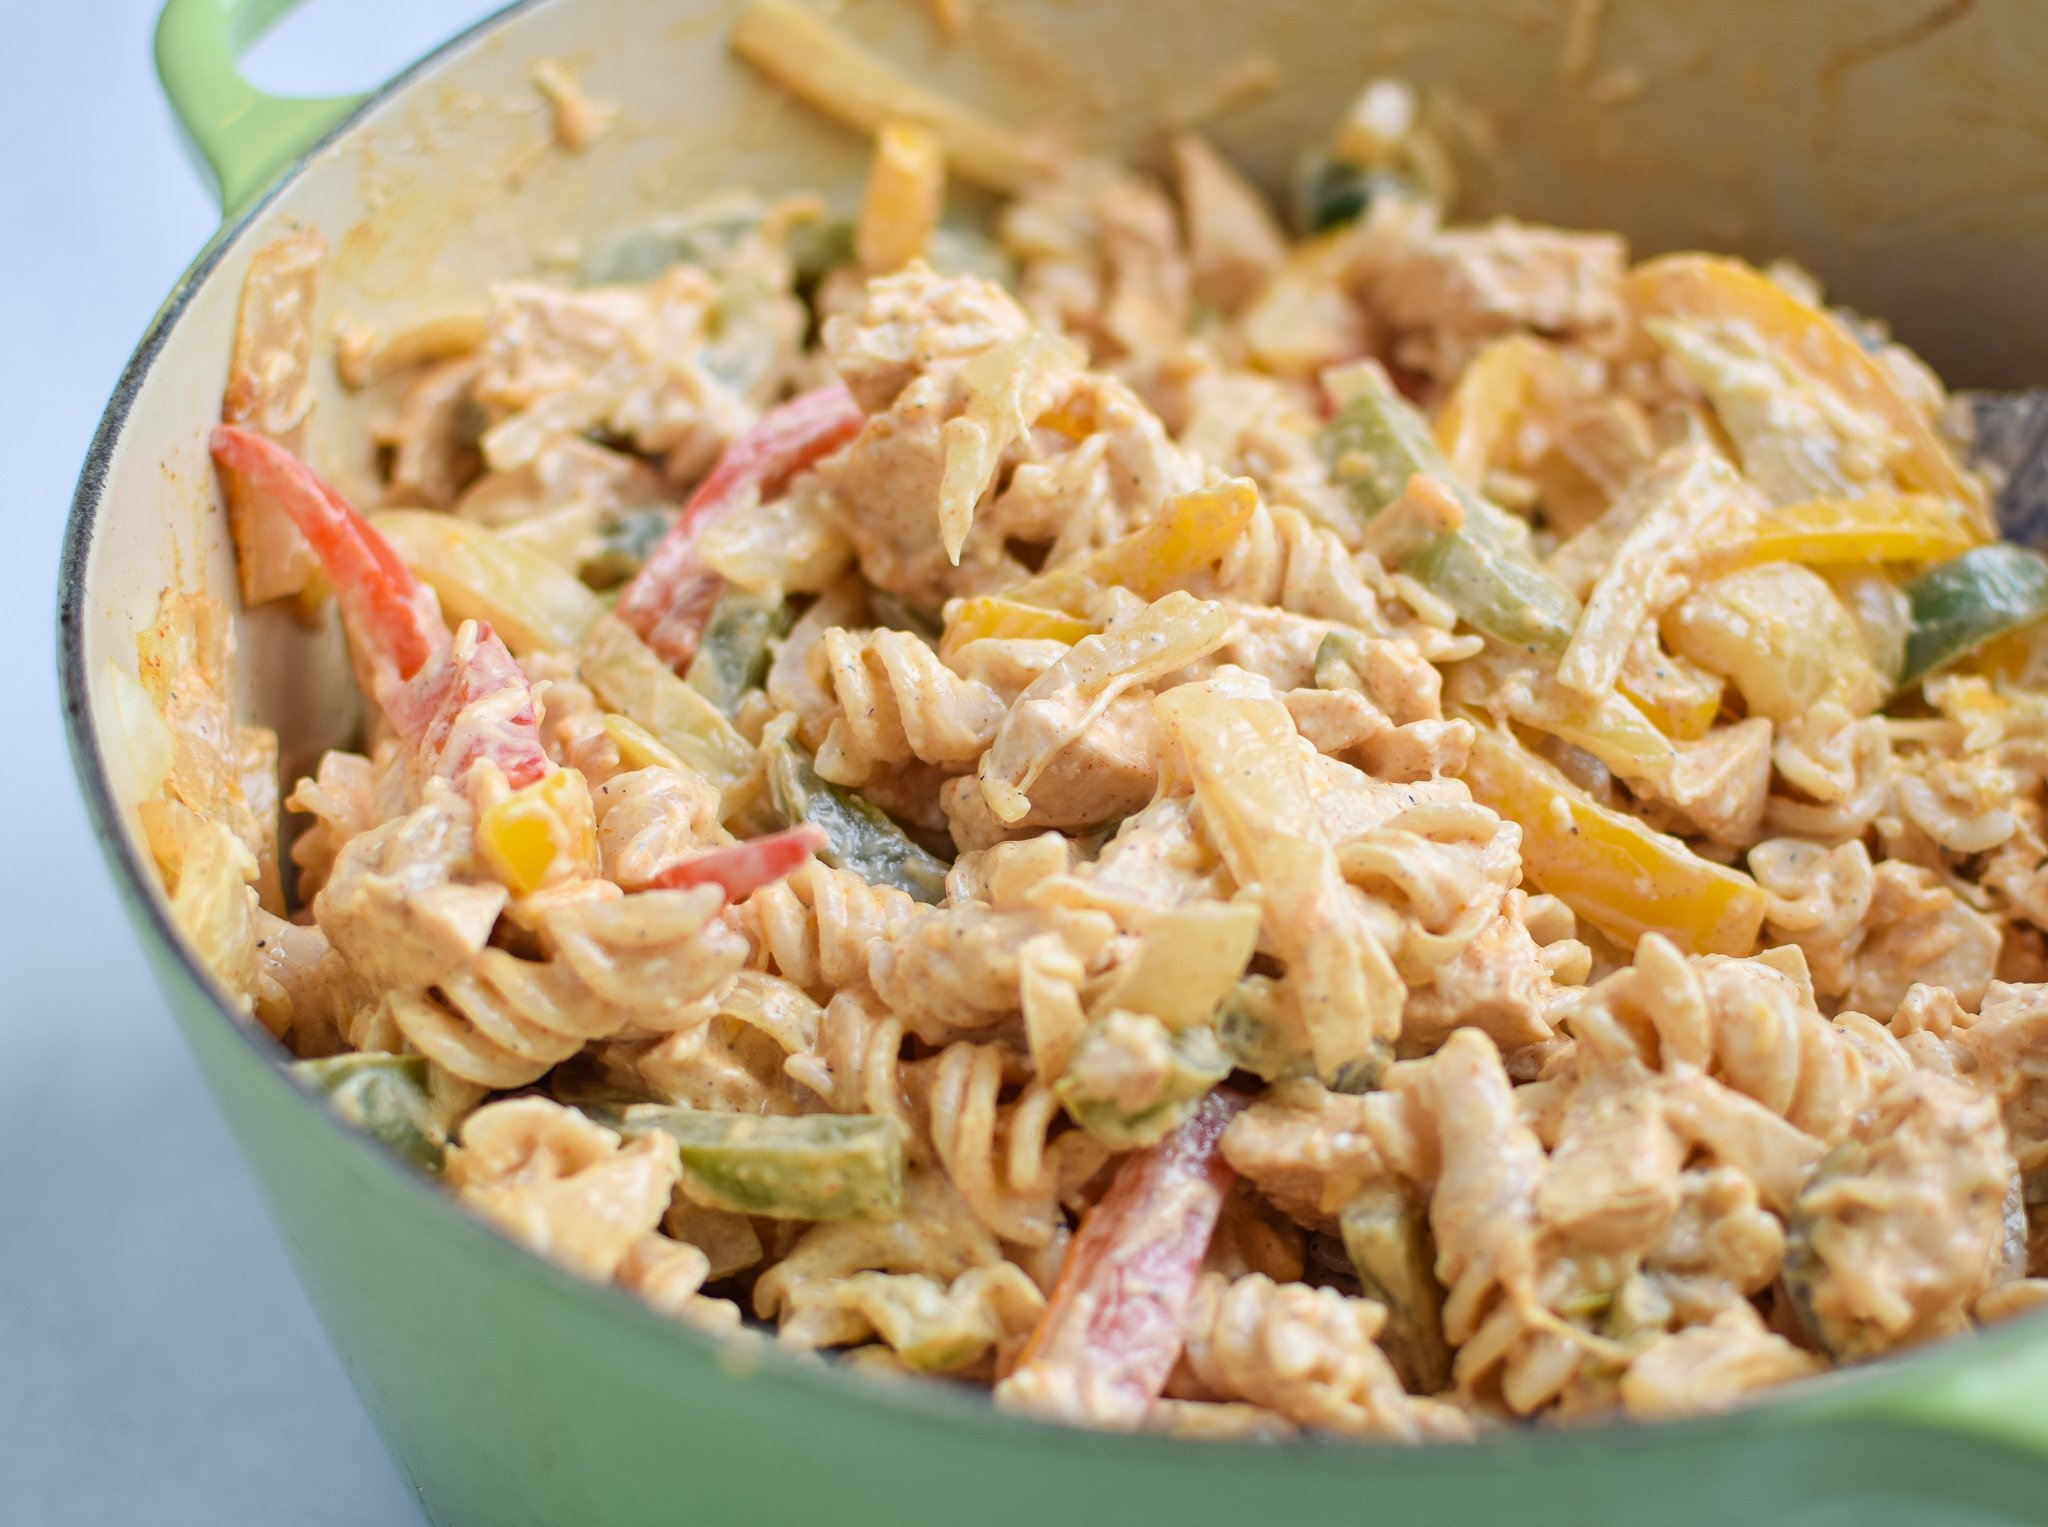 Baked Chicken Fajita Noodle Casserole - All the best chicken fajita flavors with peppers and onions, in casserole form! - ProjectMealPlan.com